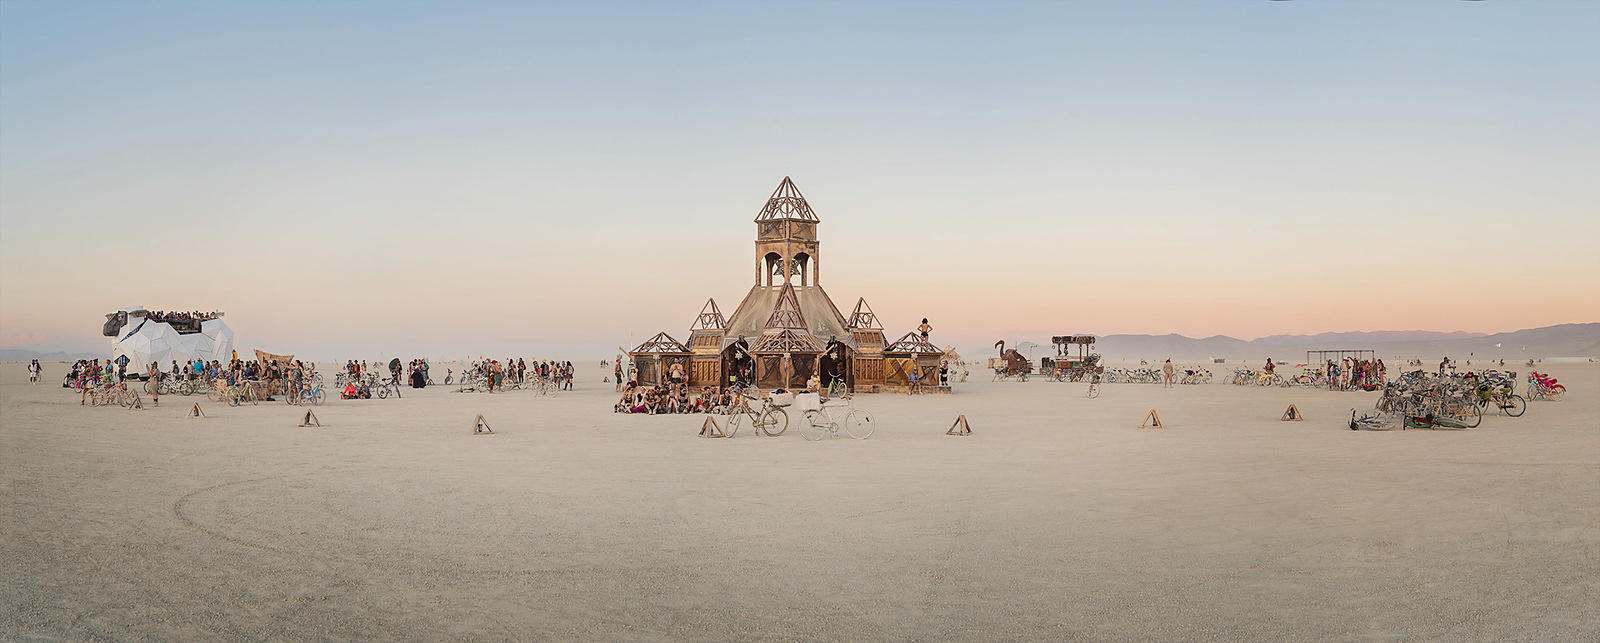 Shrine of Resonance - Burning Man 2019